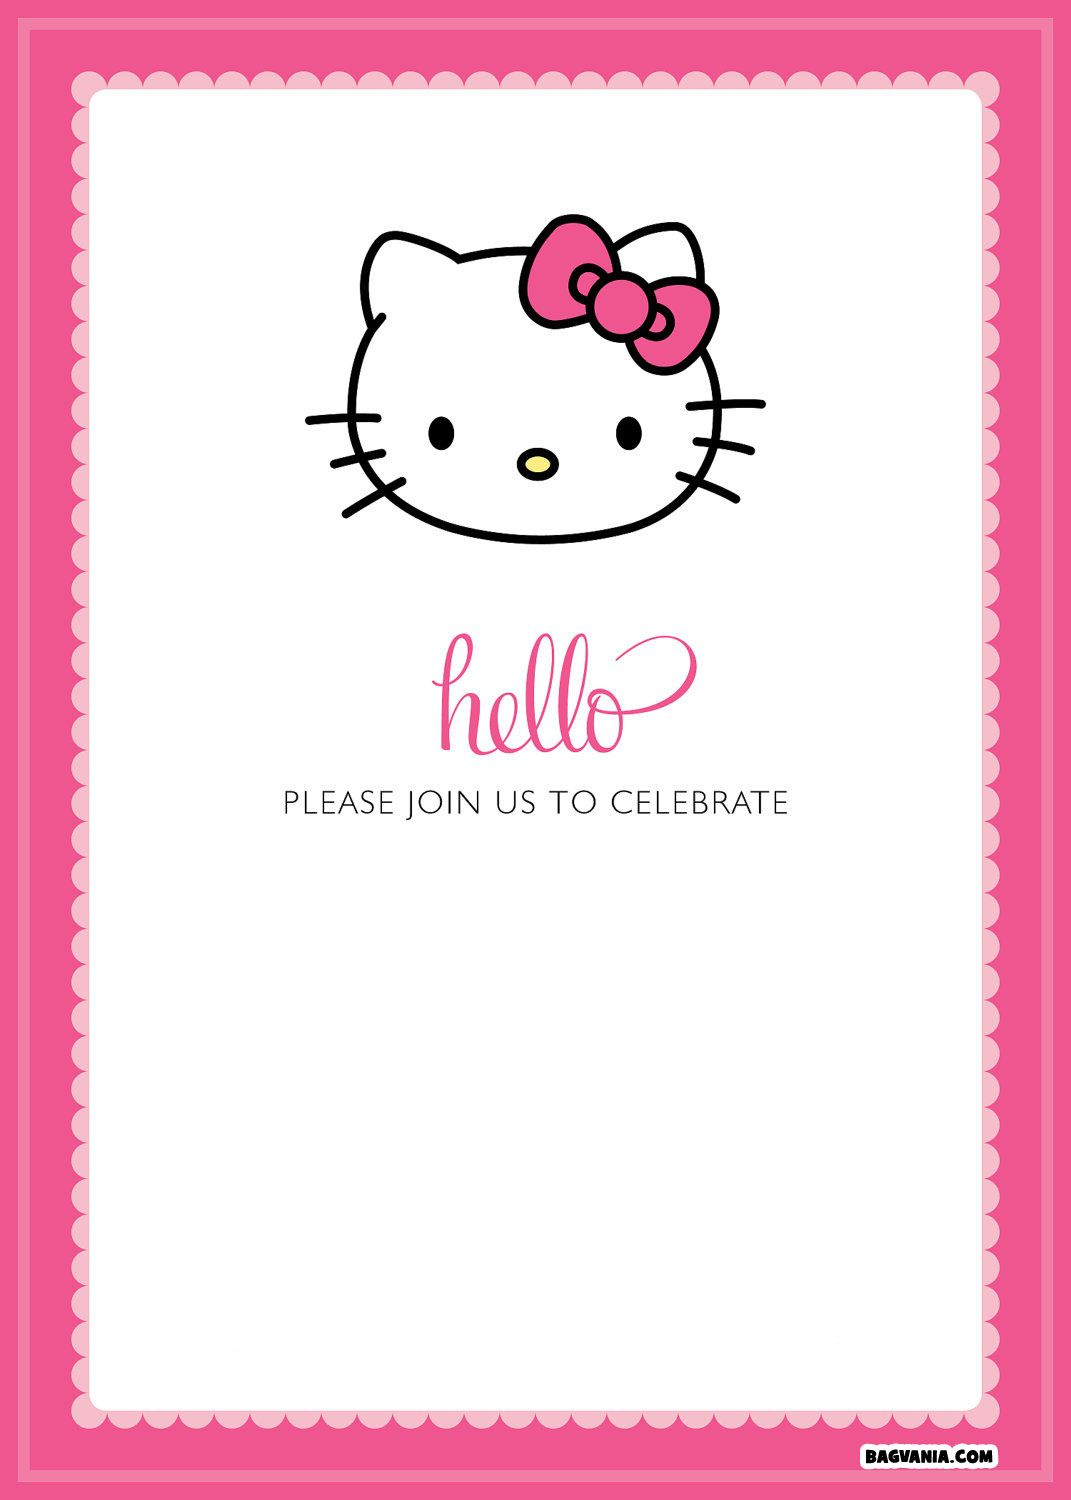 Free Printable Hello Kitty Birthday Invitations – Bagvania Free - Hello Kitty Name Tags Printable Free